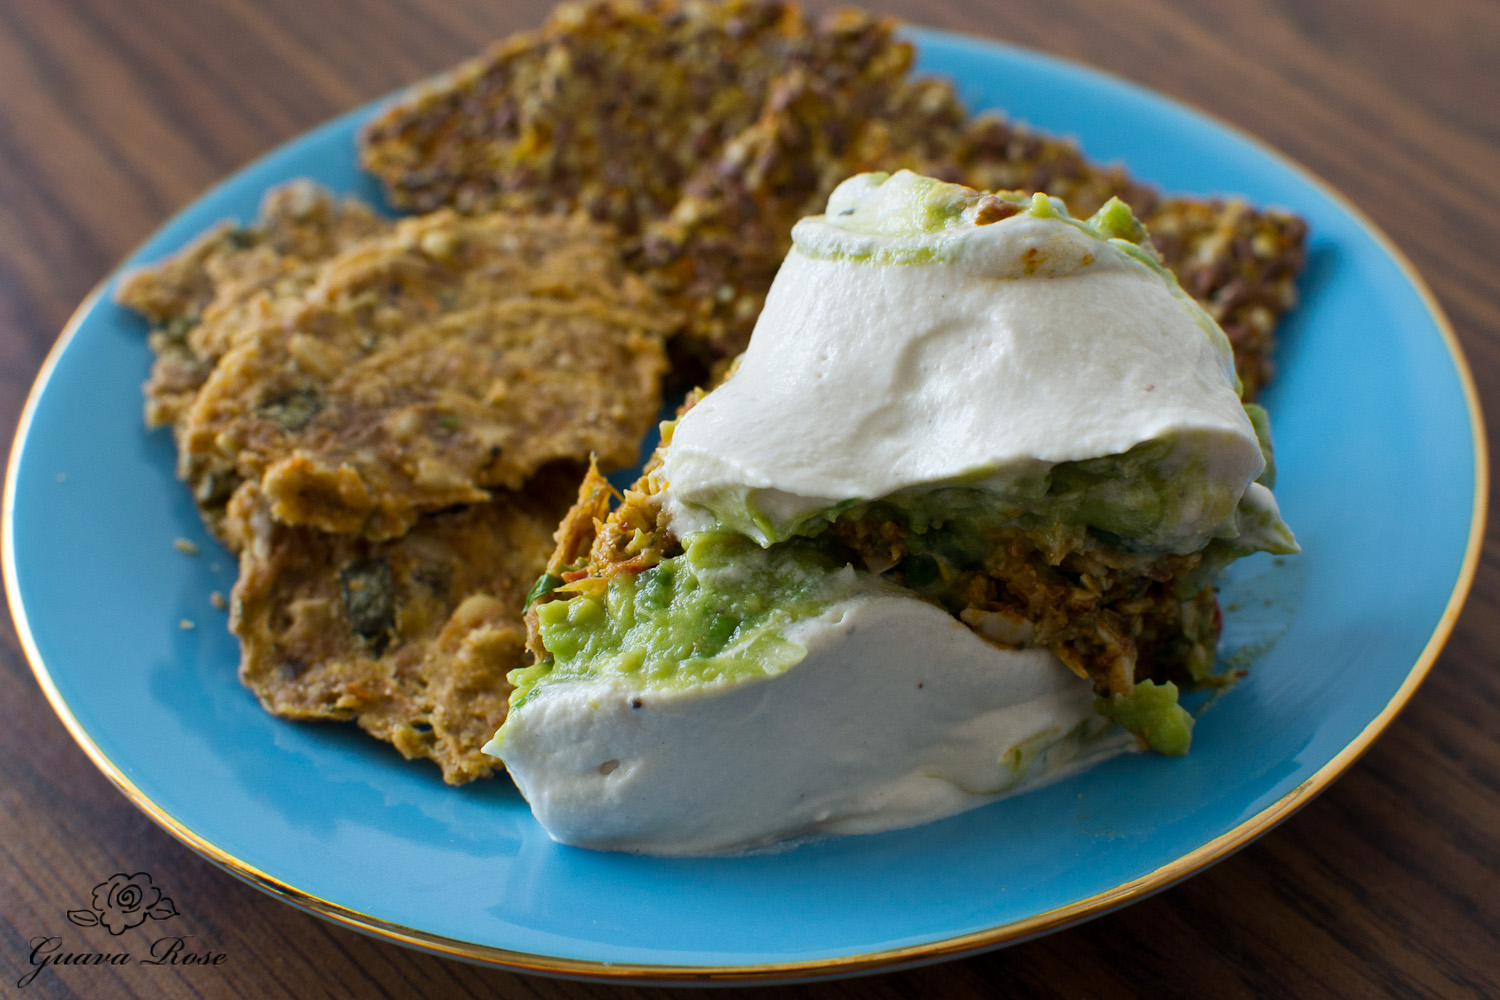 Tri-layer dip, macho nachos, flax seed thins